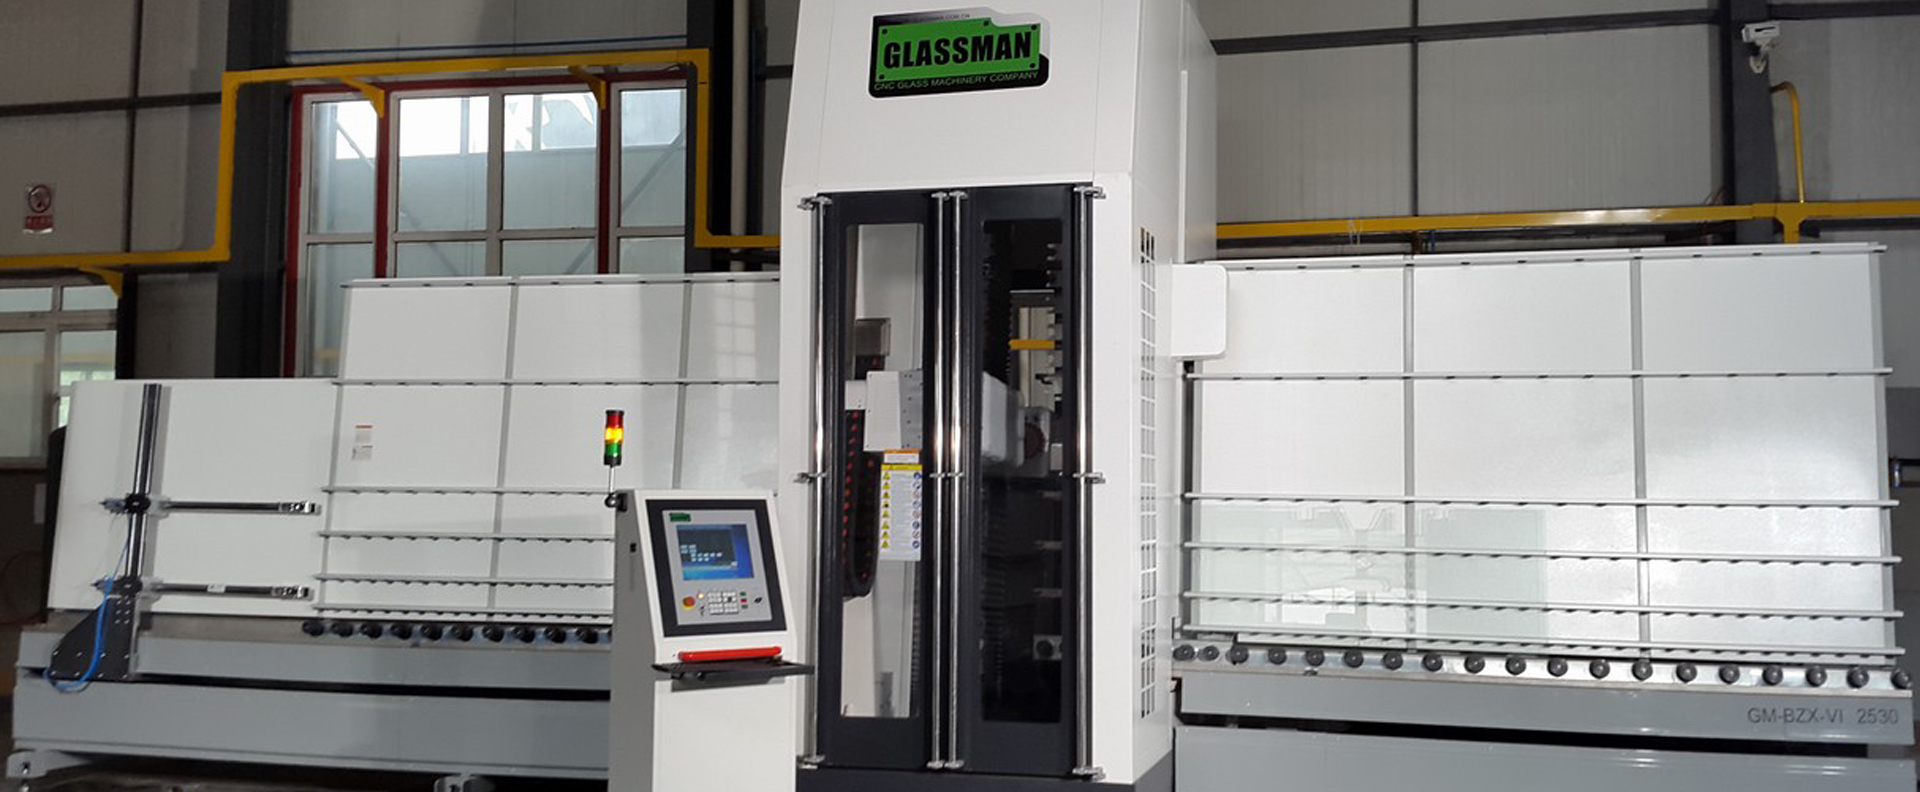 GLASSMAN CNC Drilling & Milling Machine